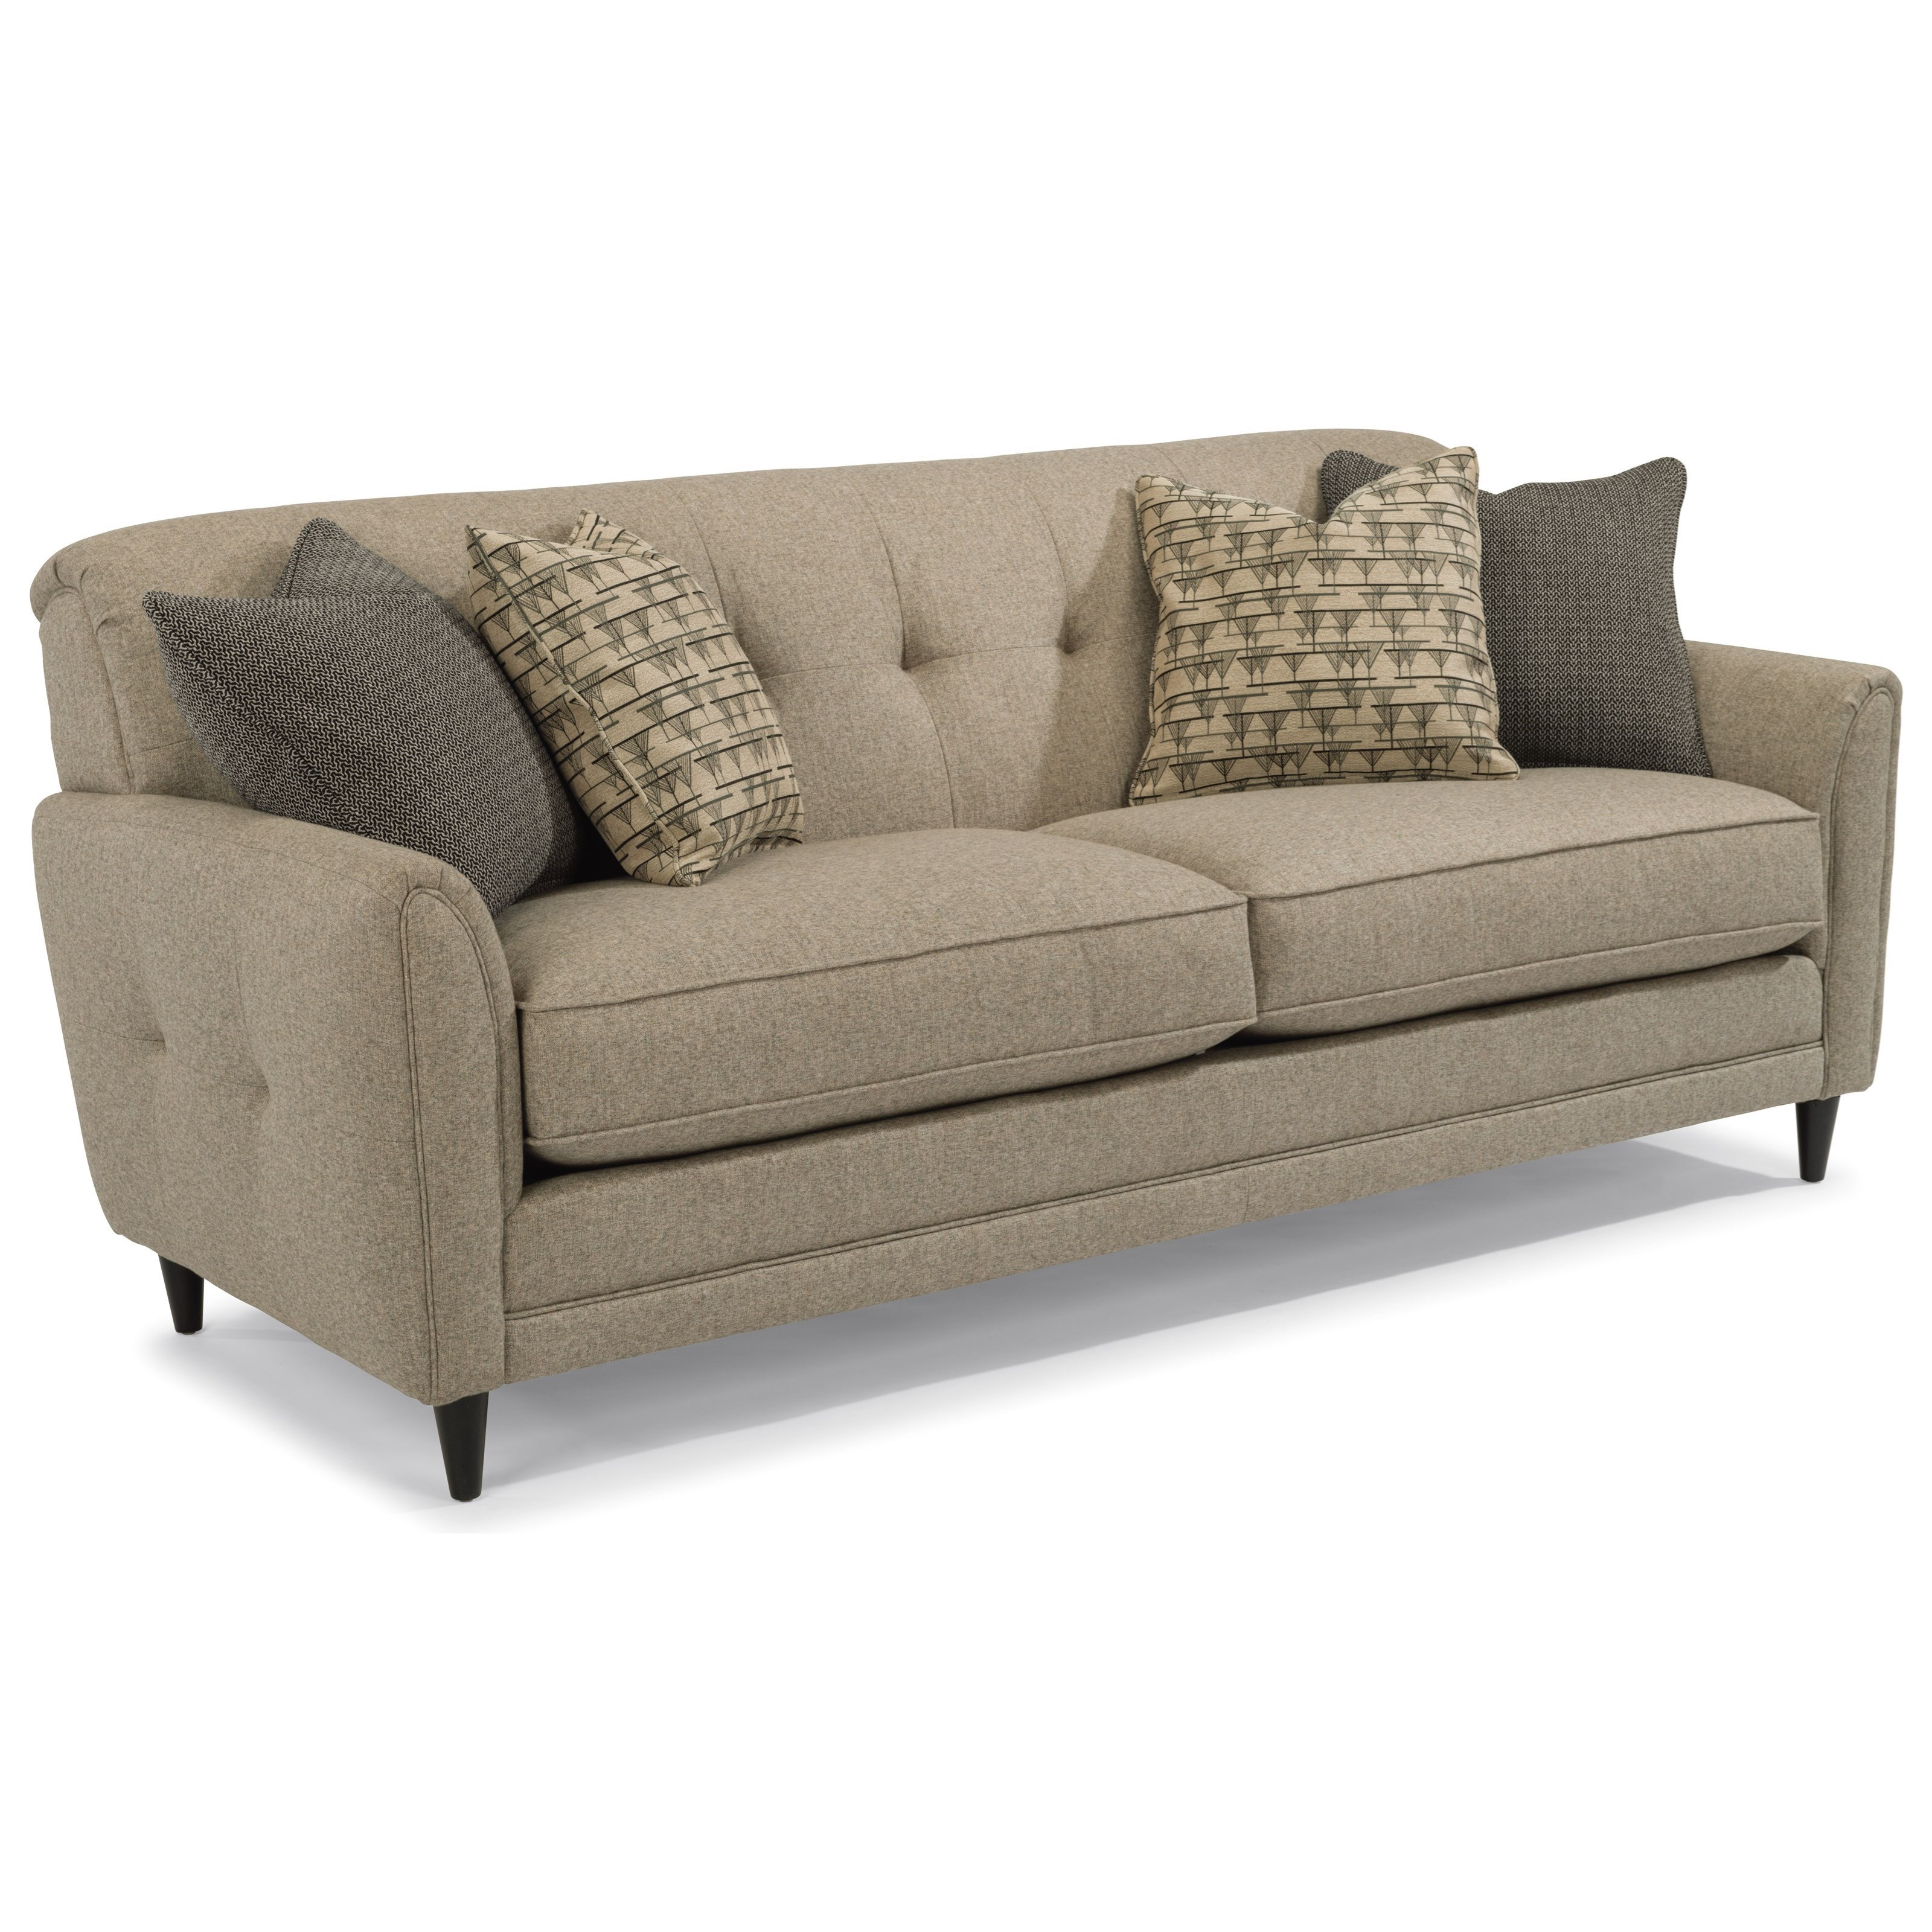 Charmant Flexsteel Jacqueline Relaxed Vintage Sofa With Button Tufting